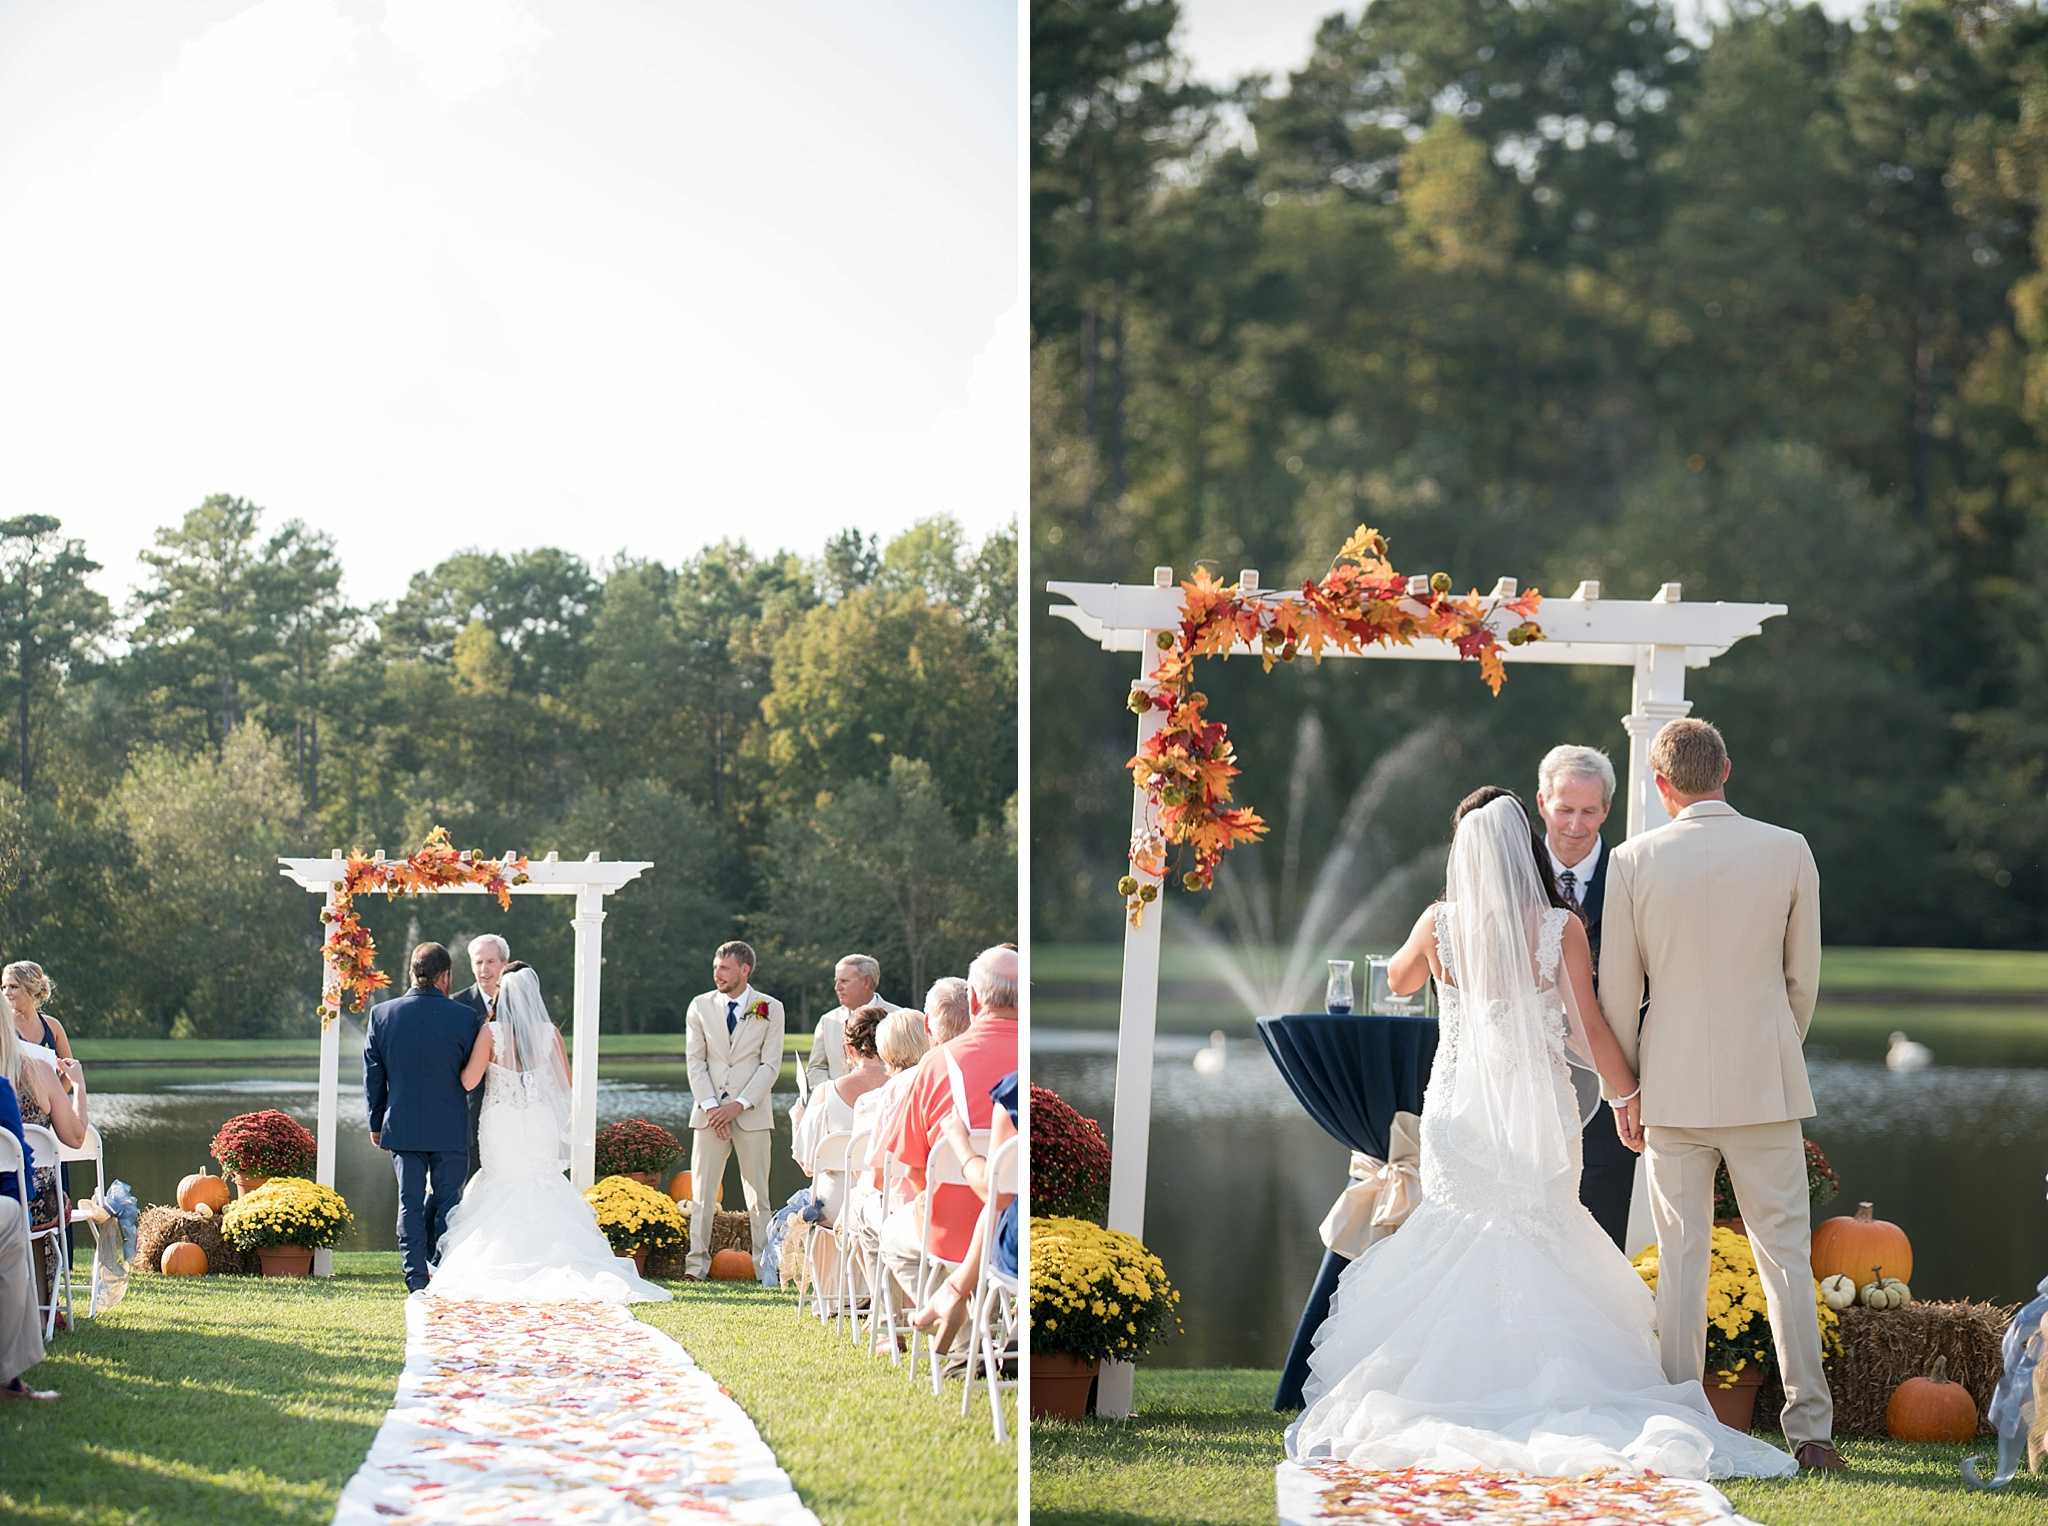 Bailey-NC-Wedding-Photographer-160.jpg